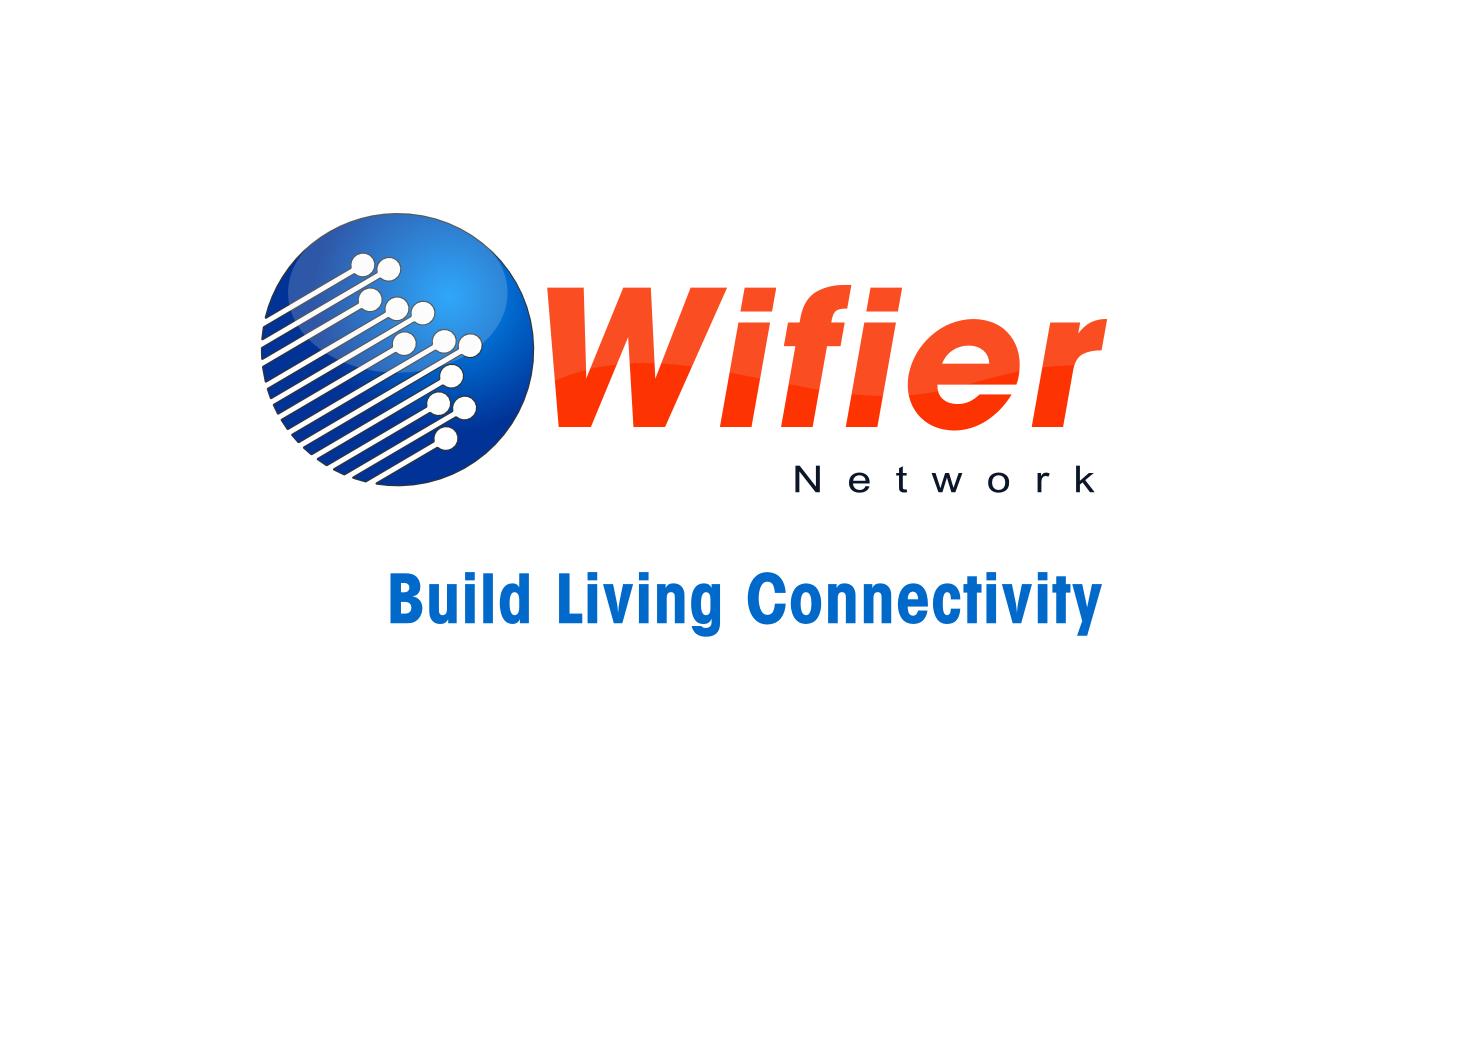 Logo Design by whoosef - Entry No. 231 in the Logo Design Contest New Logo Design for Wifier Network.